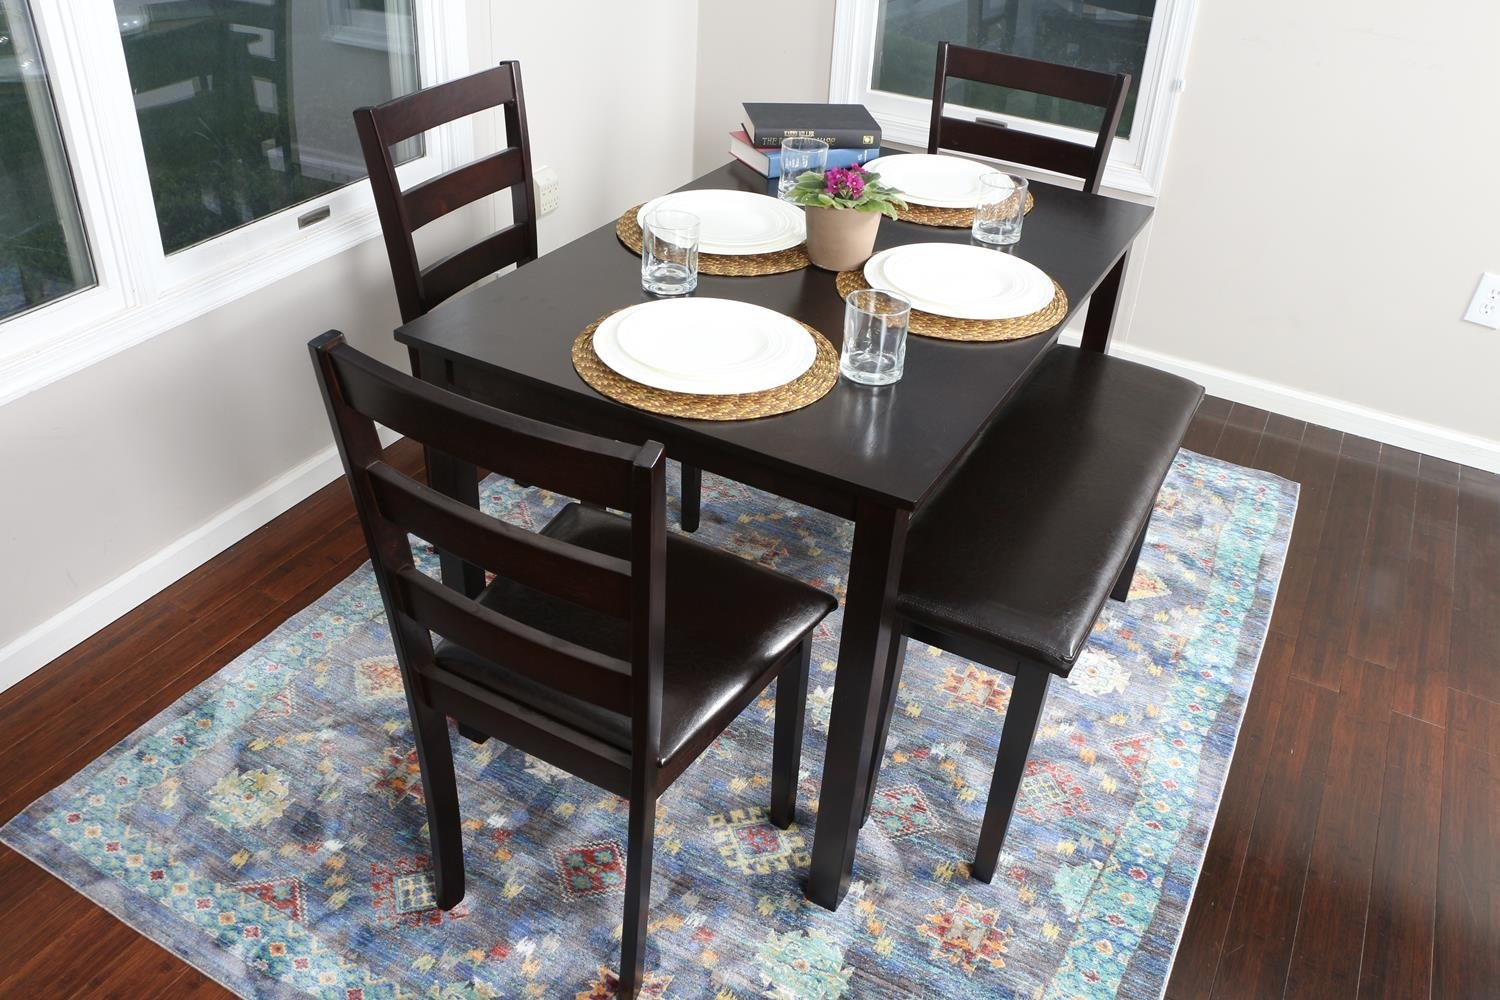 5 piece kitchen dining table set 1 table 3 leather chairs 1 bench espresso brown discount - Bench kitchen set ...